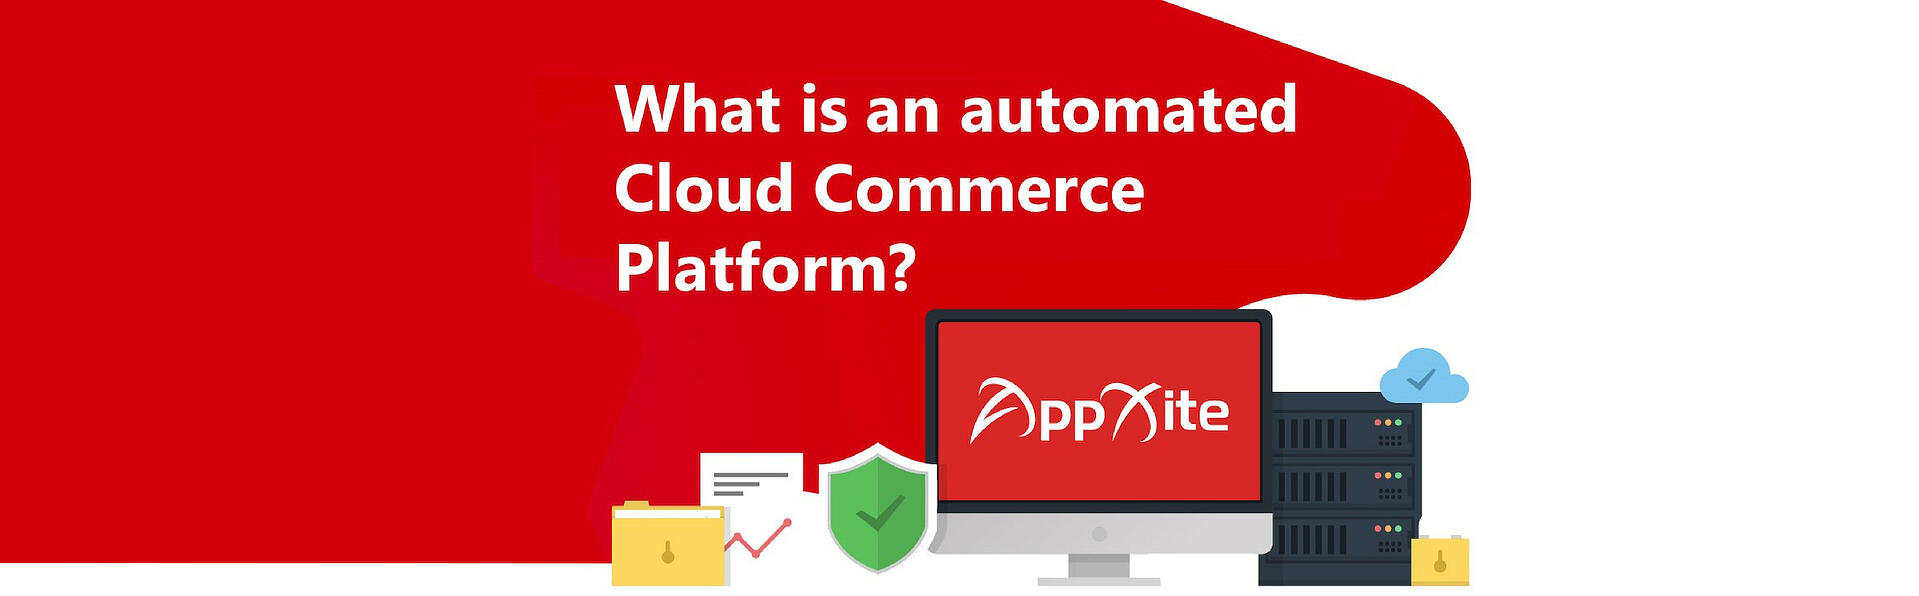 What is an automated Cloud Commerce Platform?